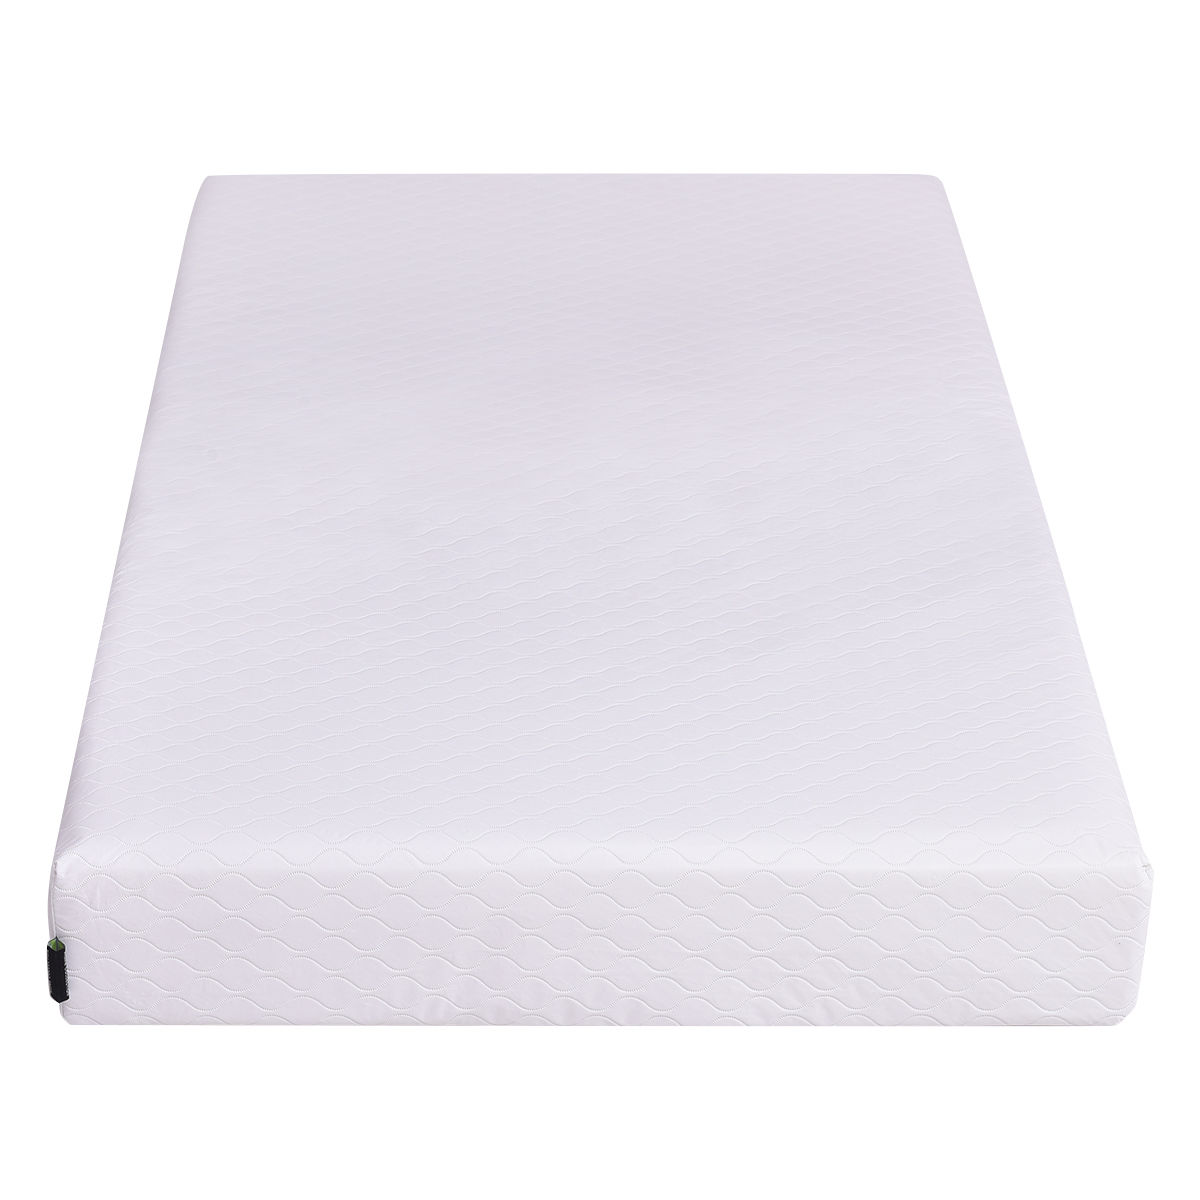 Baby Crib Memory Foam Mattress HT0950